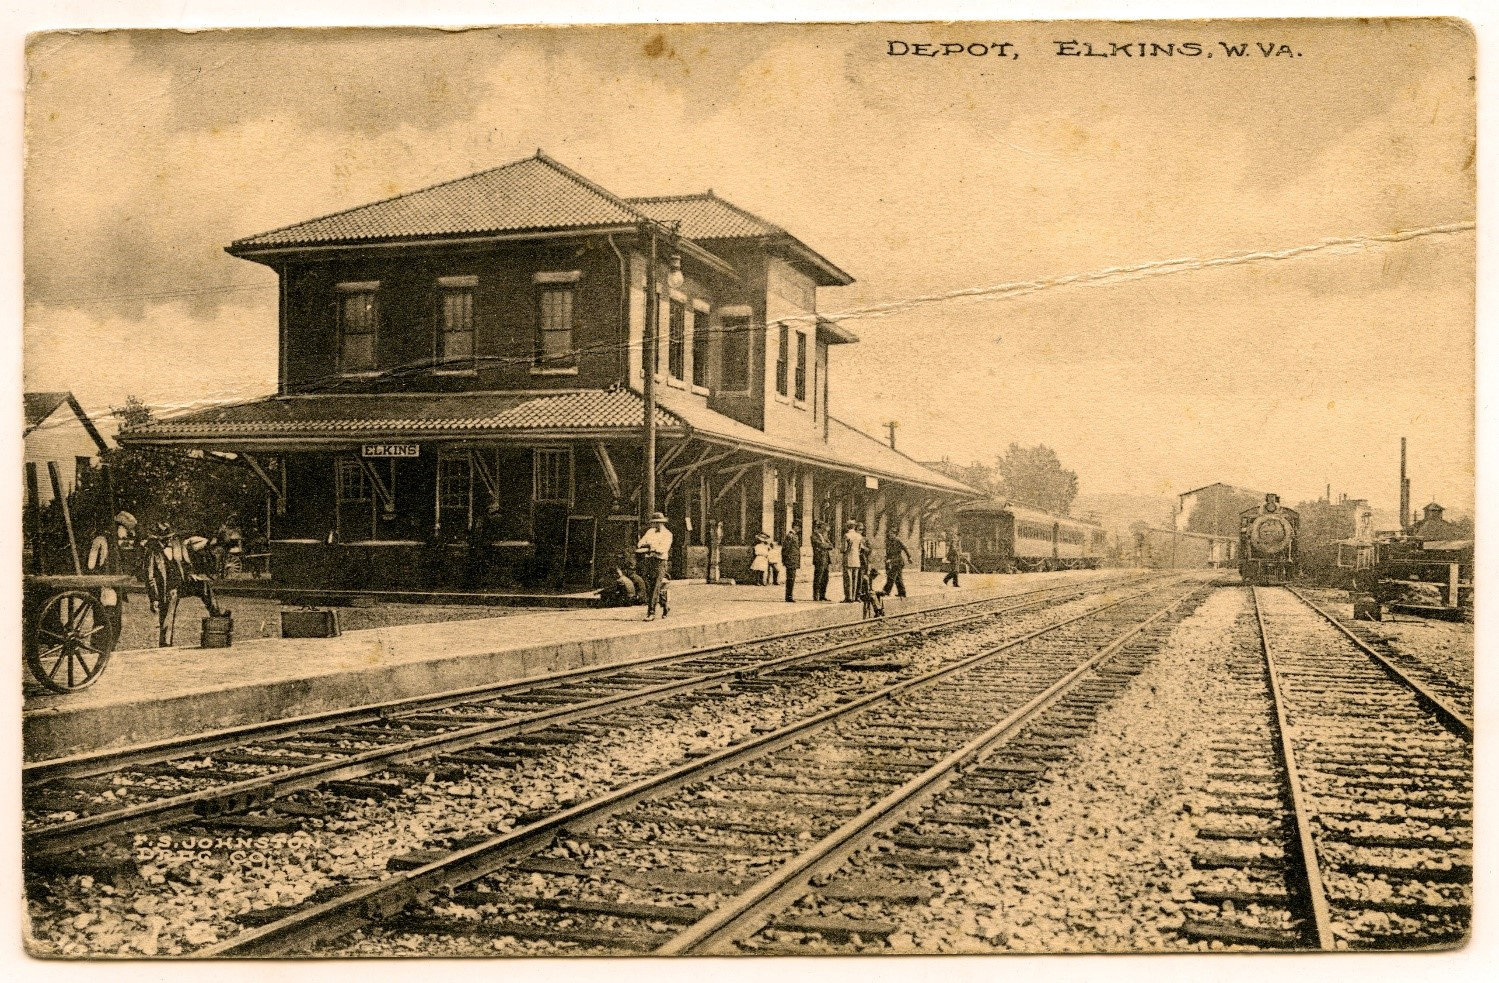 Sepia image of train depot, with some trains pulling in or out